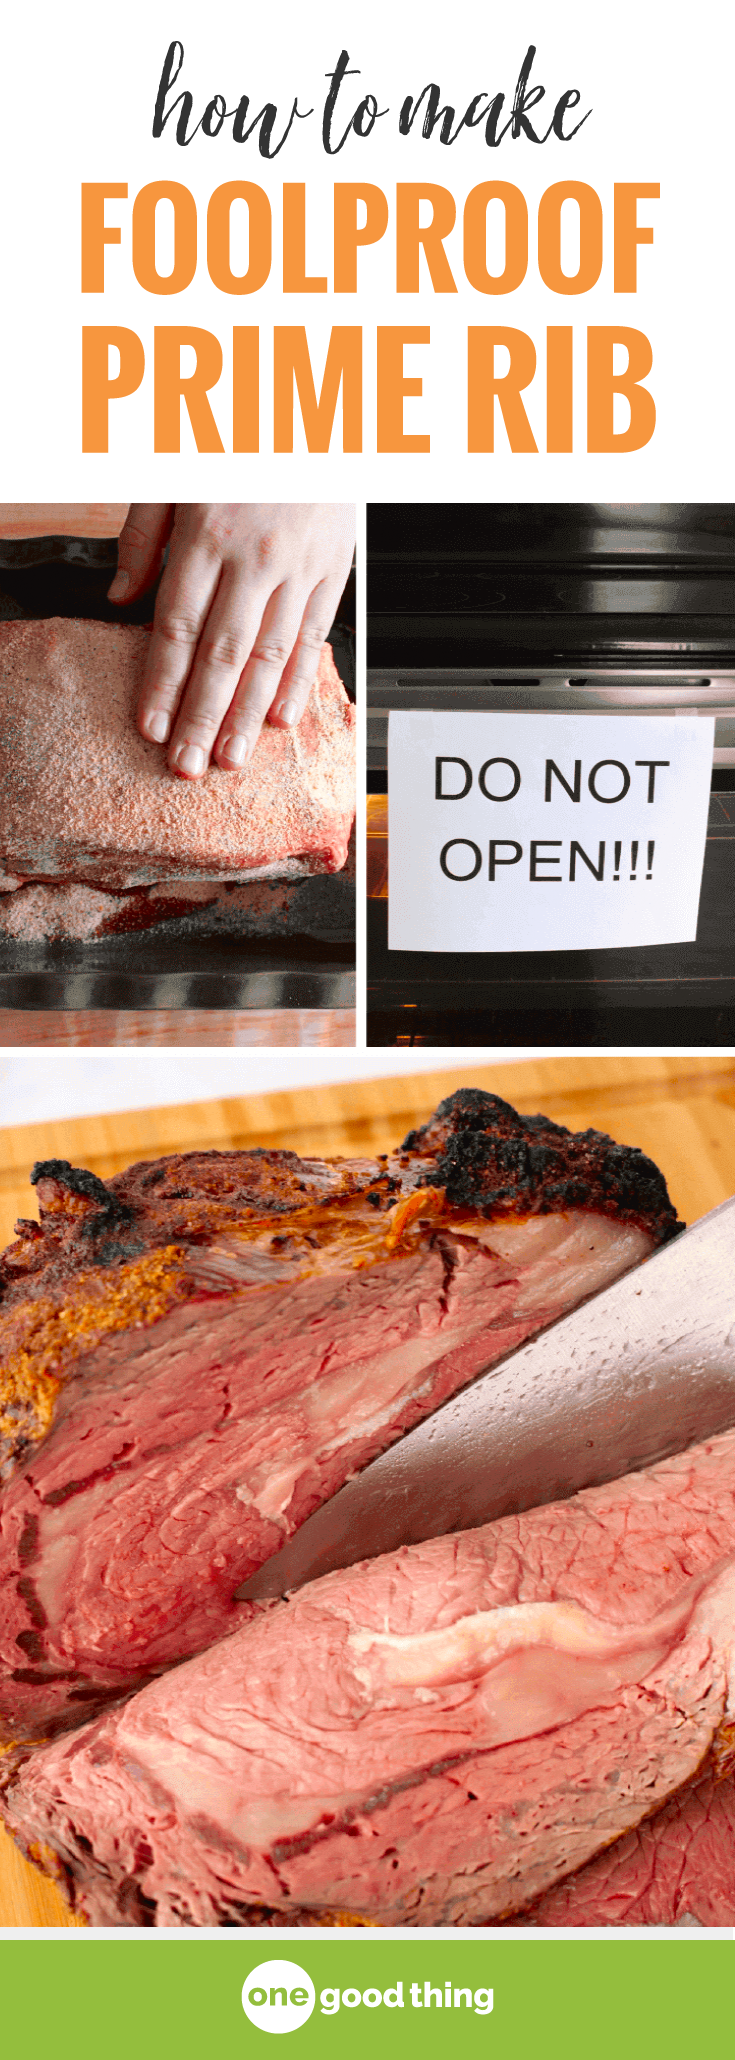 You Can Make Prime Rib I Promise This Method Is Foolproof And The Results Are So Delicious This Prime Rib Will Be The Rib Recipes Recipes Prime Rib Recipe